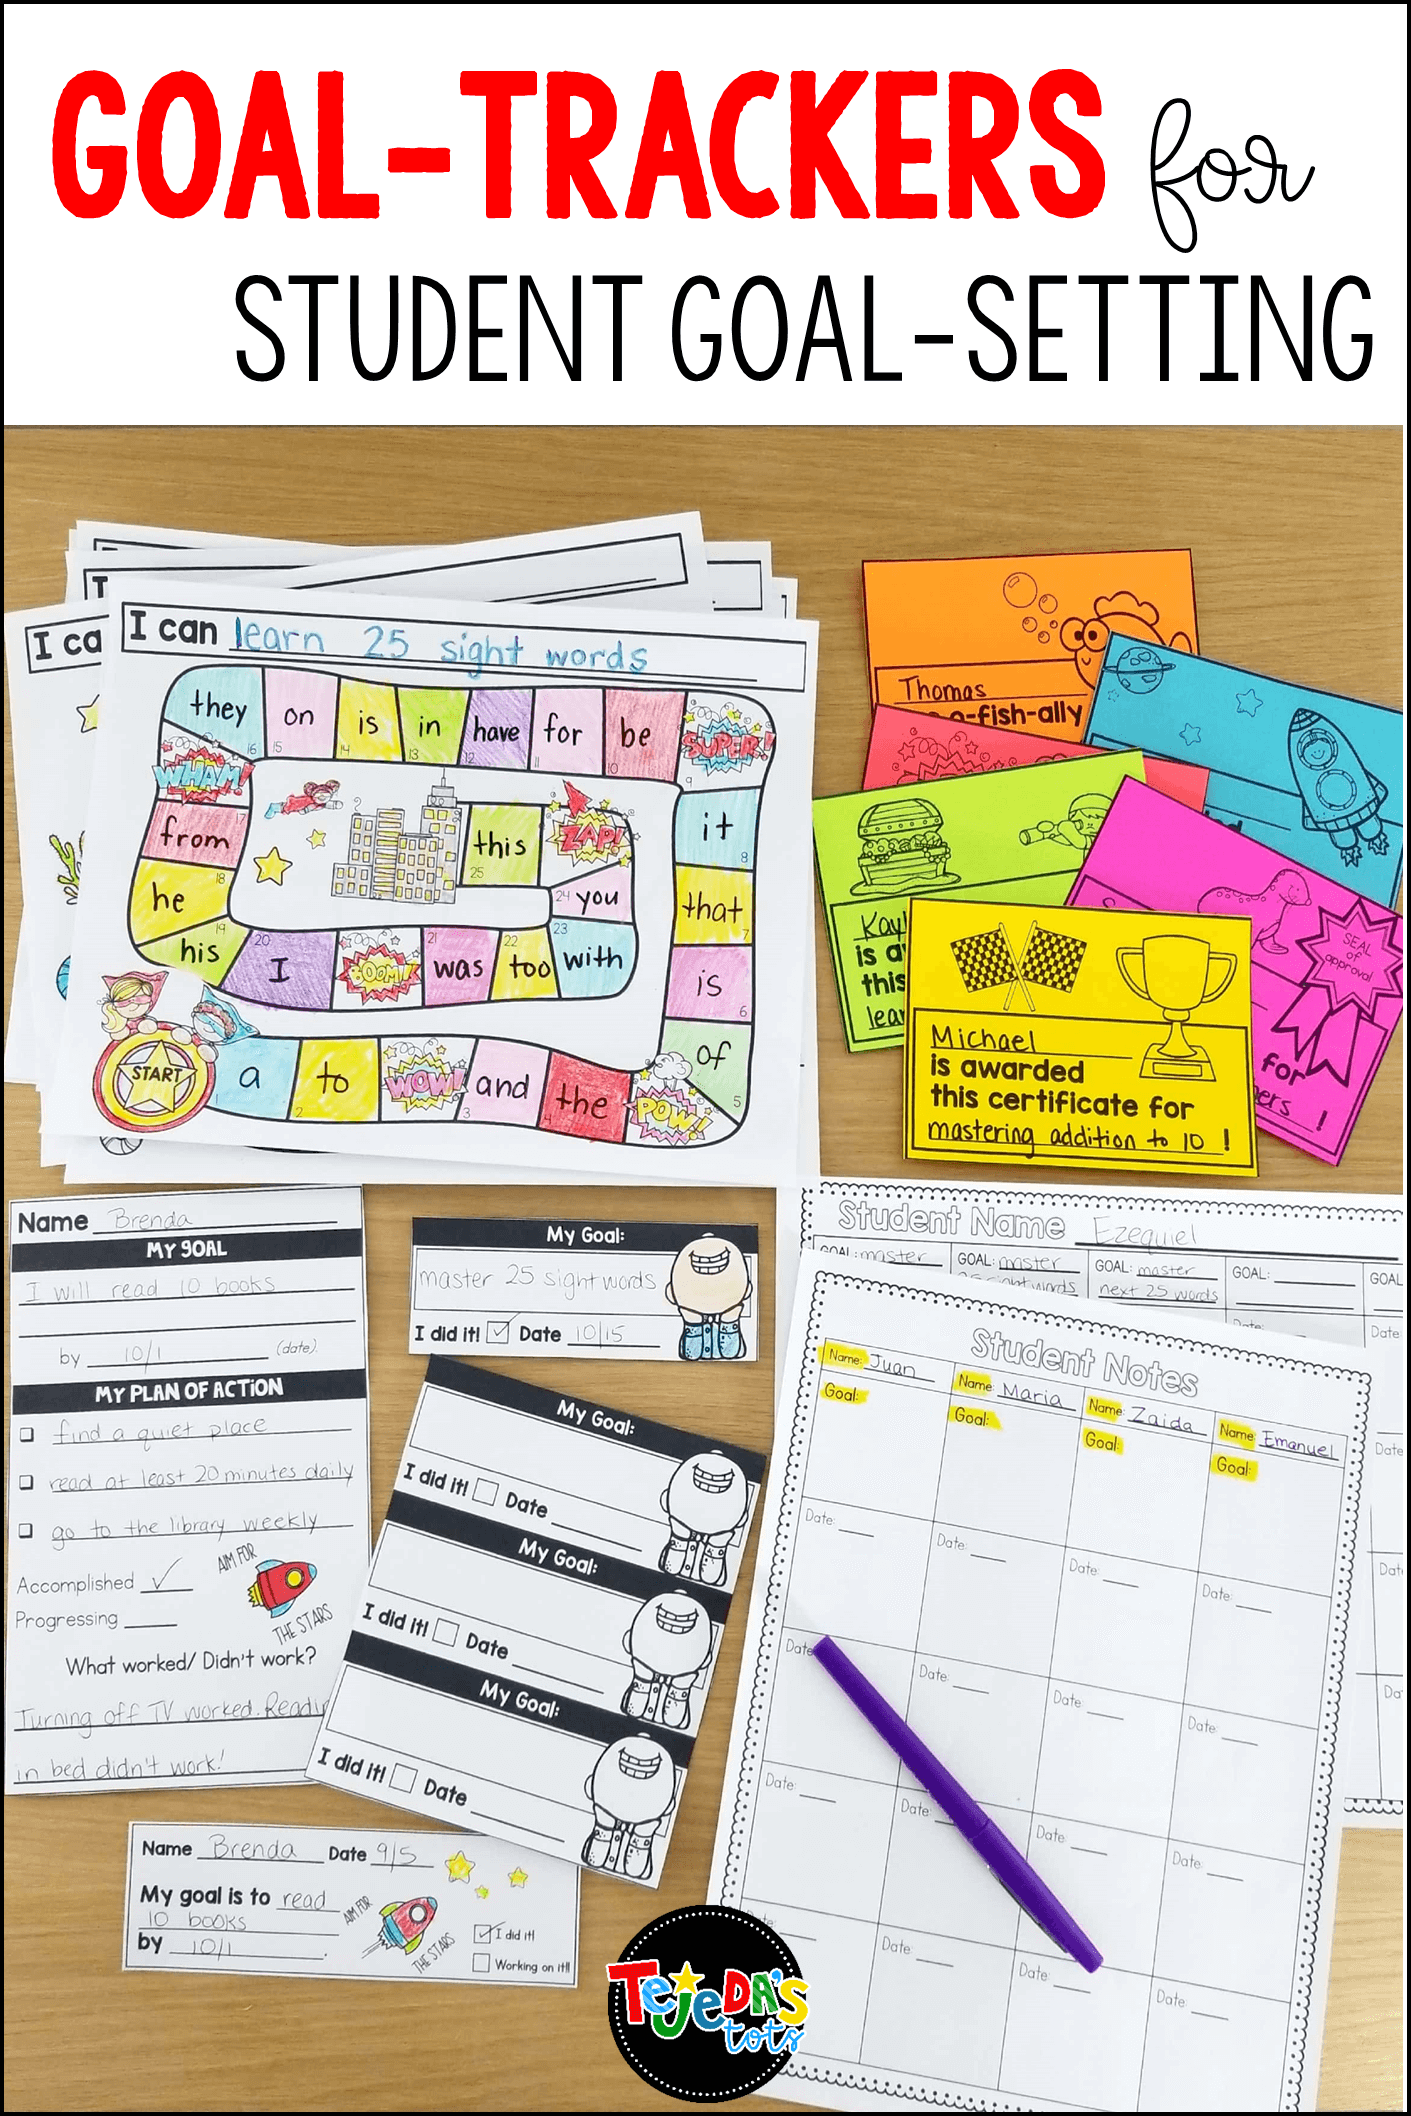 Helping your students set their own goals can be a powerful tool in your primary classroom! This resource makes it easy for kindergarten, first, second, and third grade students to set goals and keep track of their progress. Goal-setting slips, goal-tracking boards in 6 themes, certificates, and teacher data sheets to record progress are all included. #tejedastots #studentgoalsetting